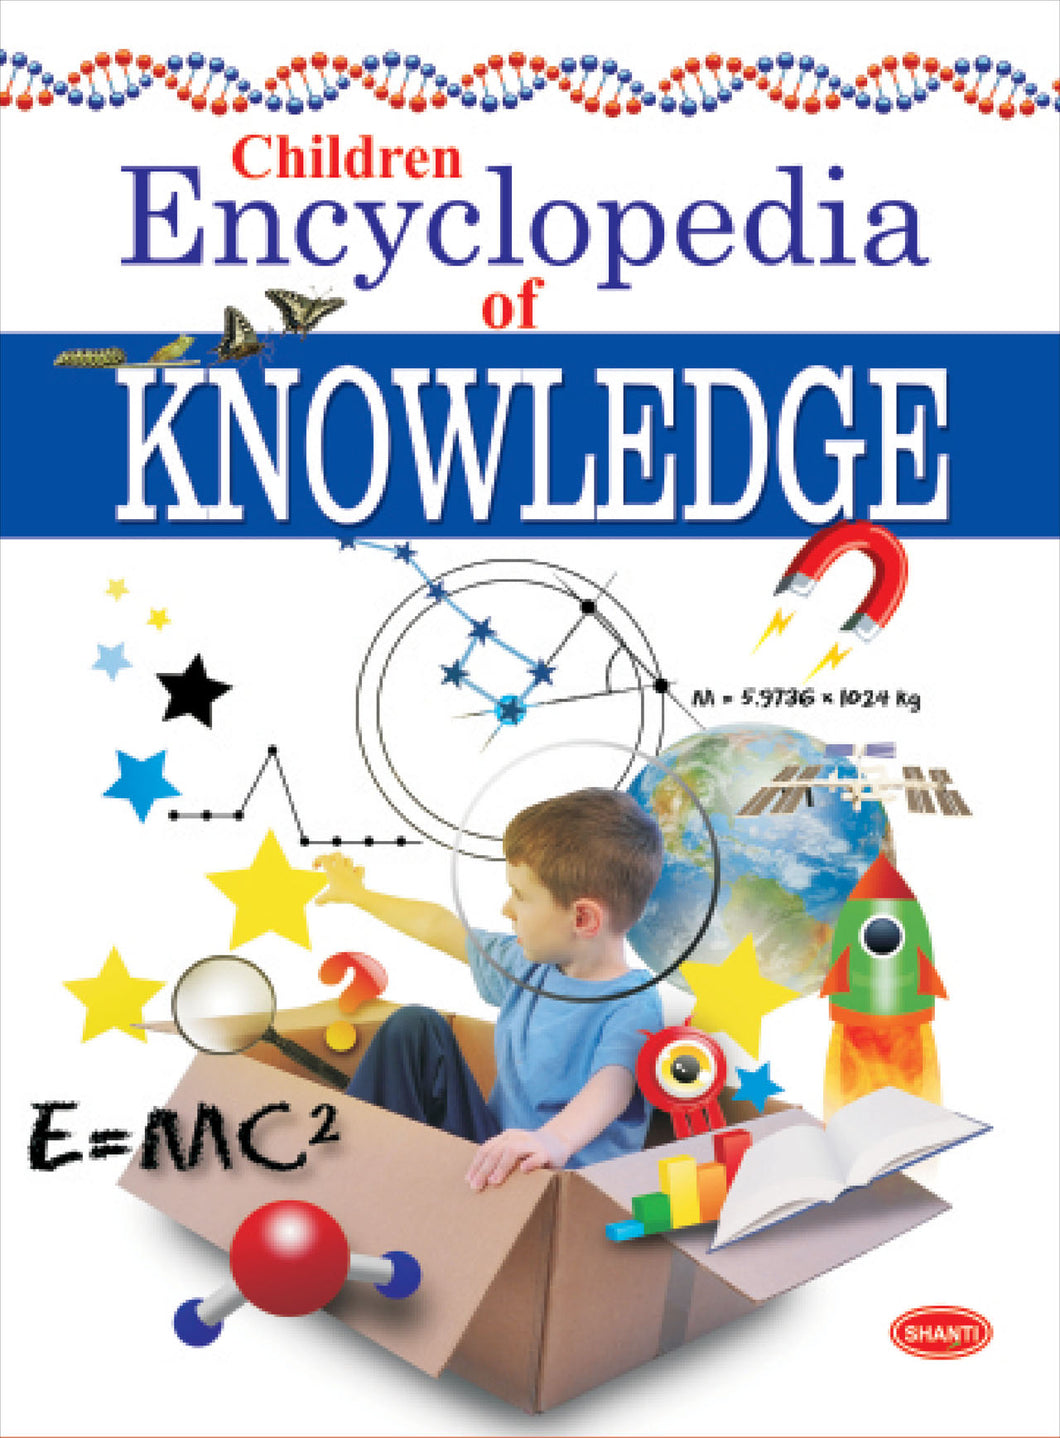 encyclopedia for kids-Children Encyclopedia of Knowledge_Blue